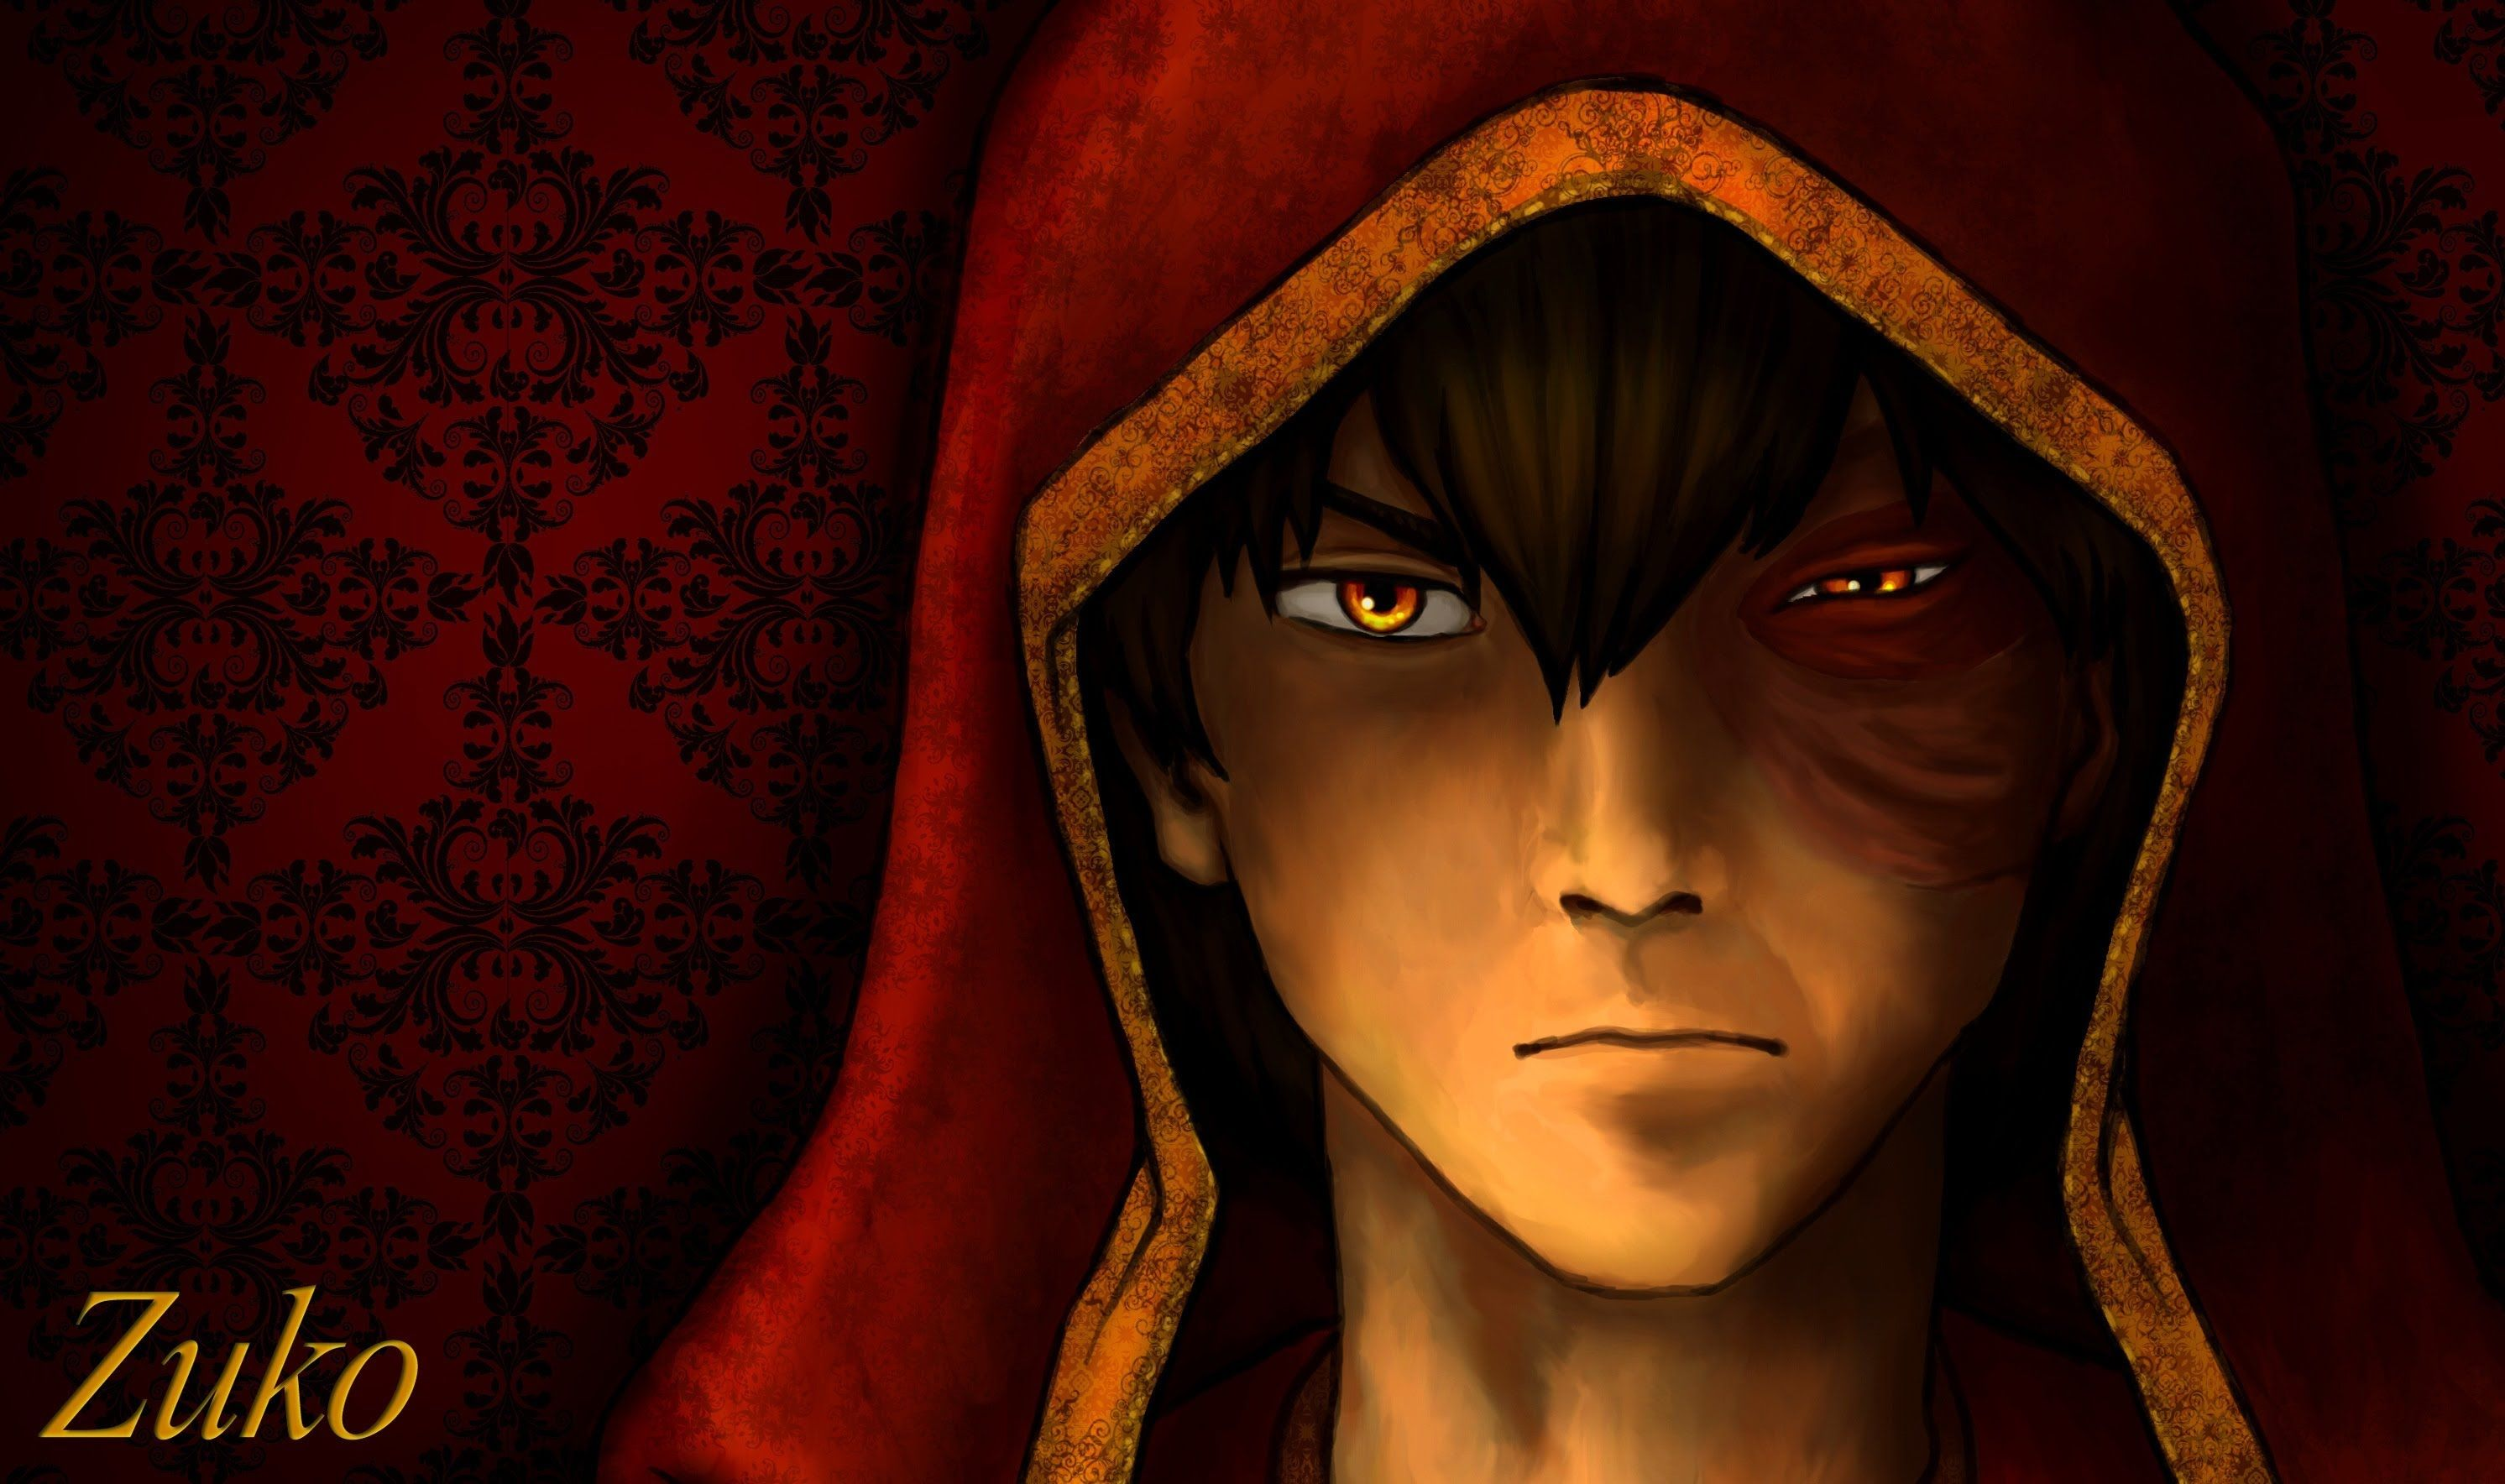 Zuko is the name of animaginary character from the